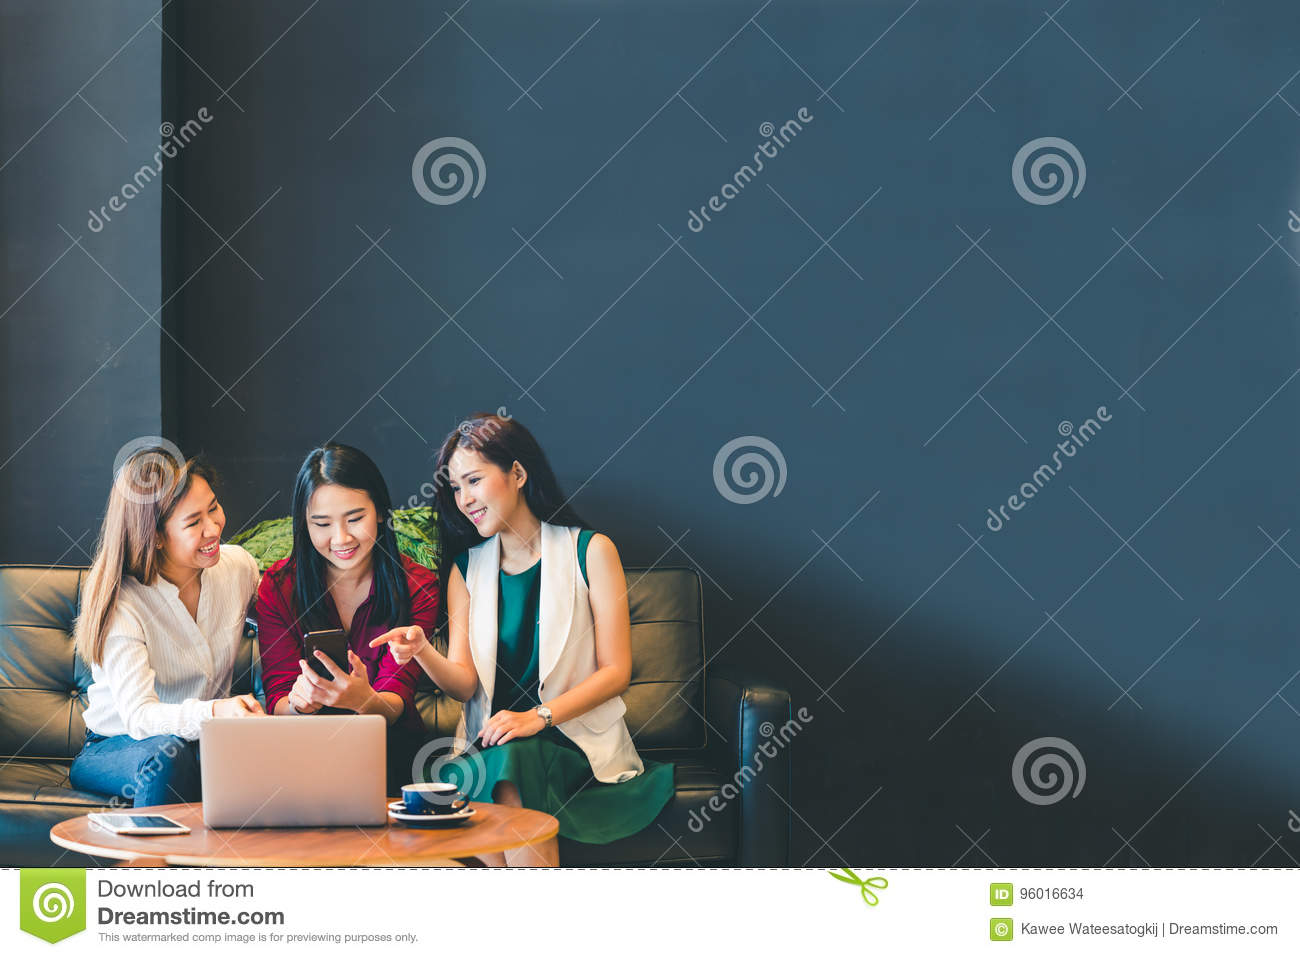 Three beautiful Asian girls using smartphone and laptop, chatting on sofa together at cafe with copy space